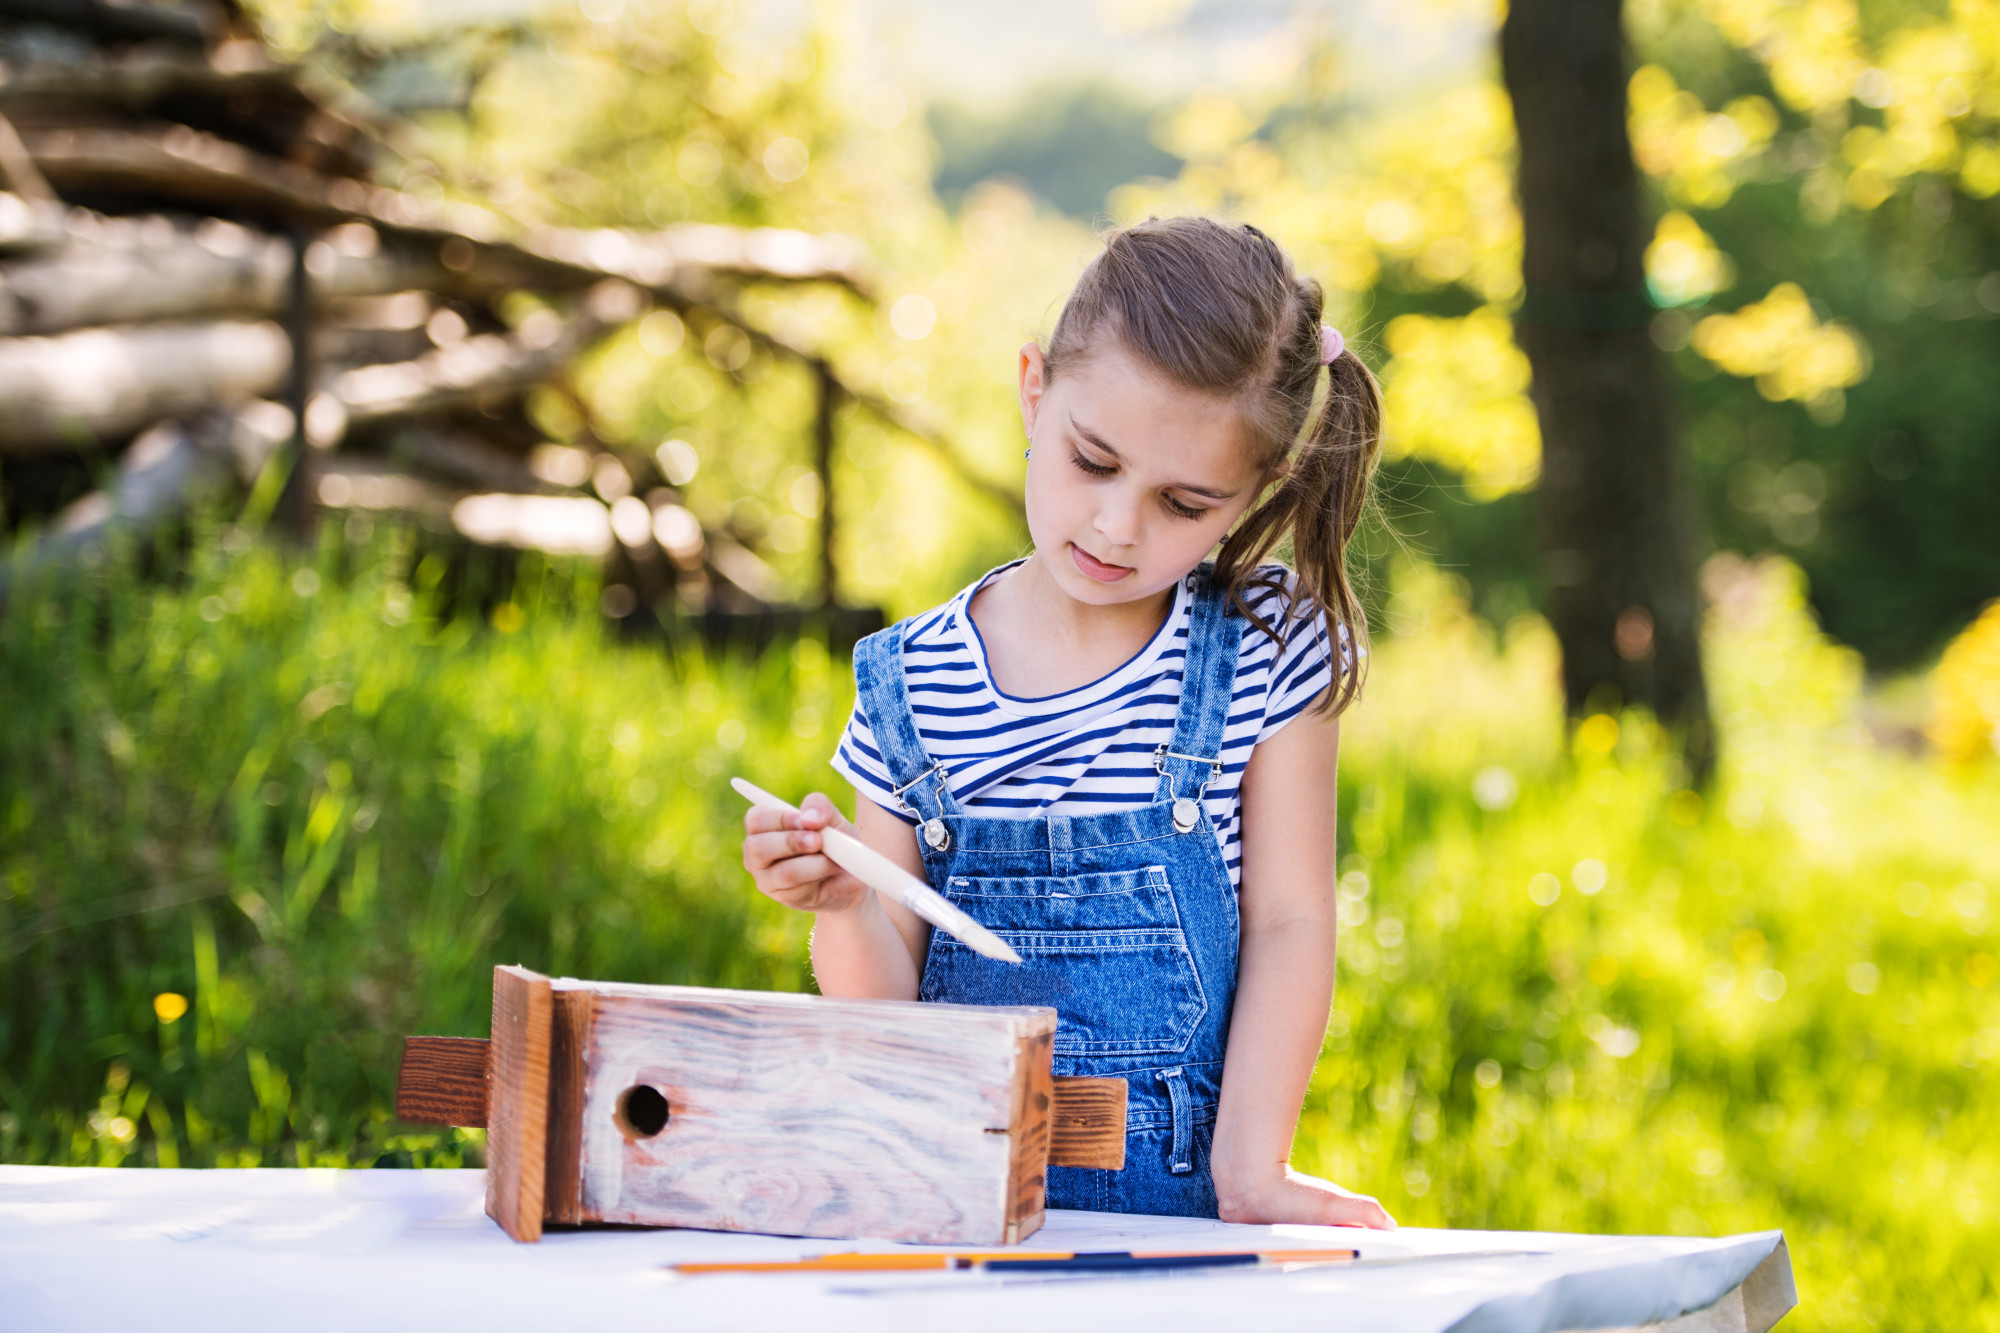 girl painting birdhouse outdoors